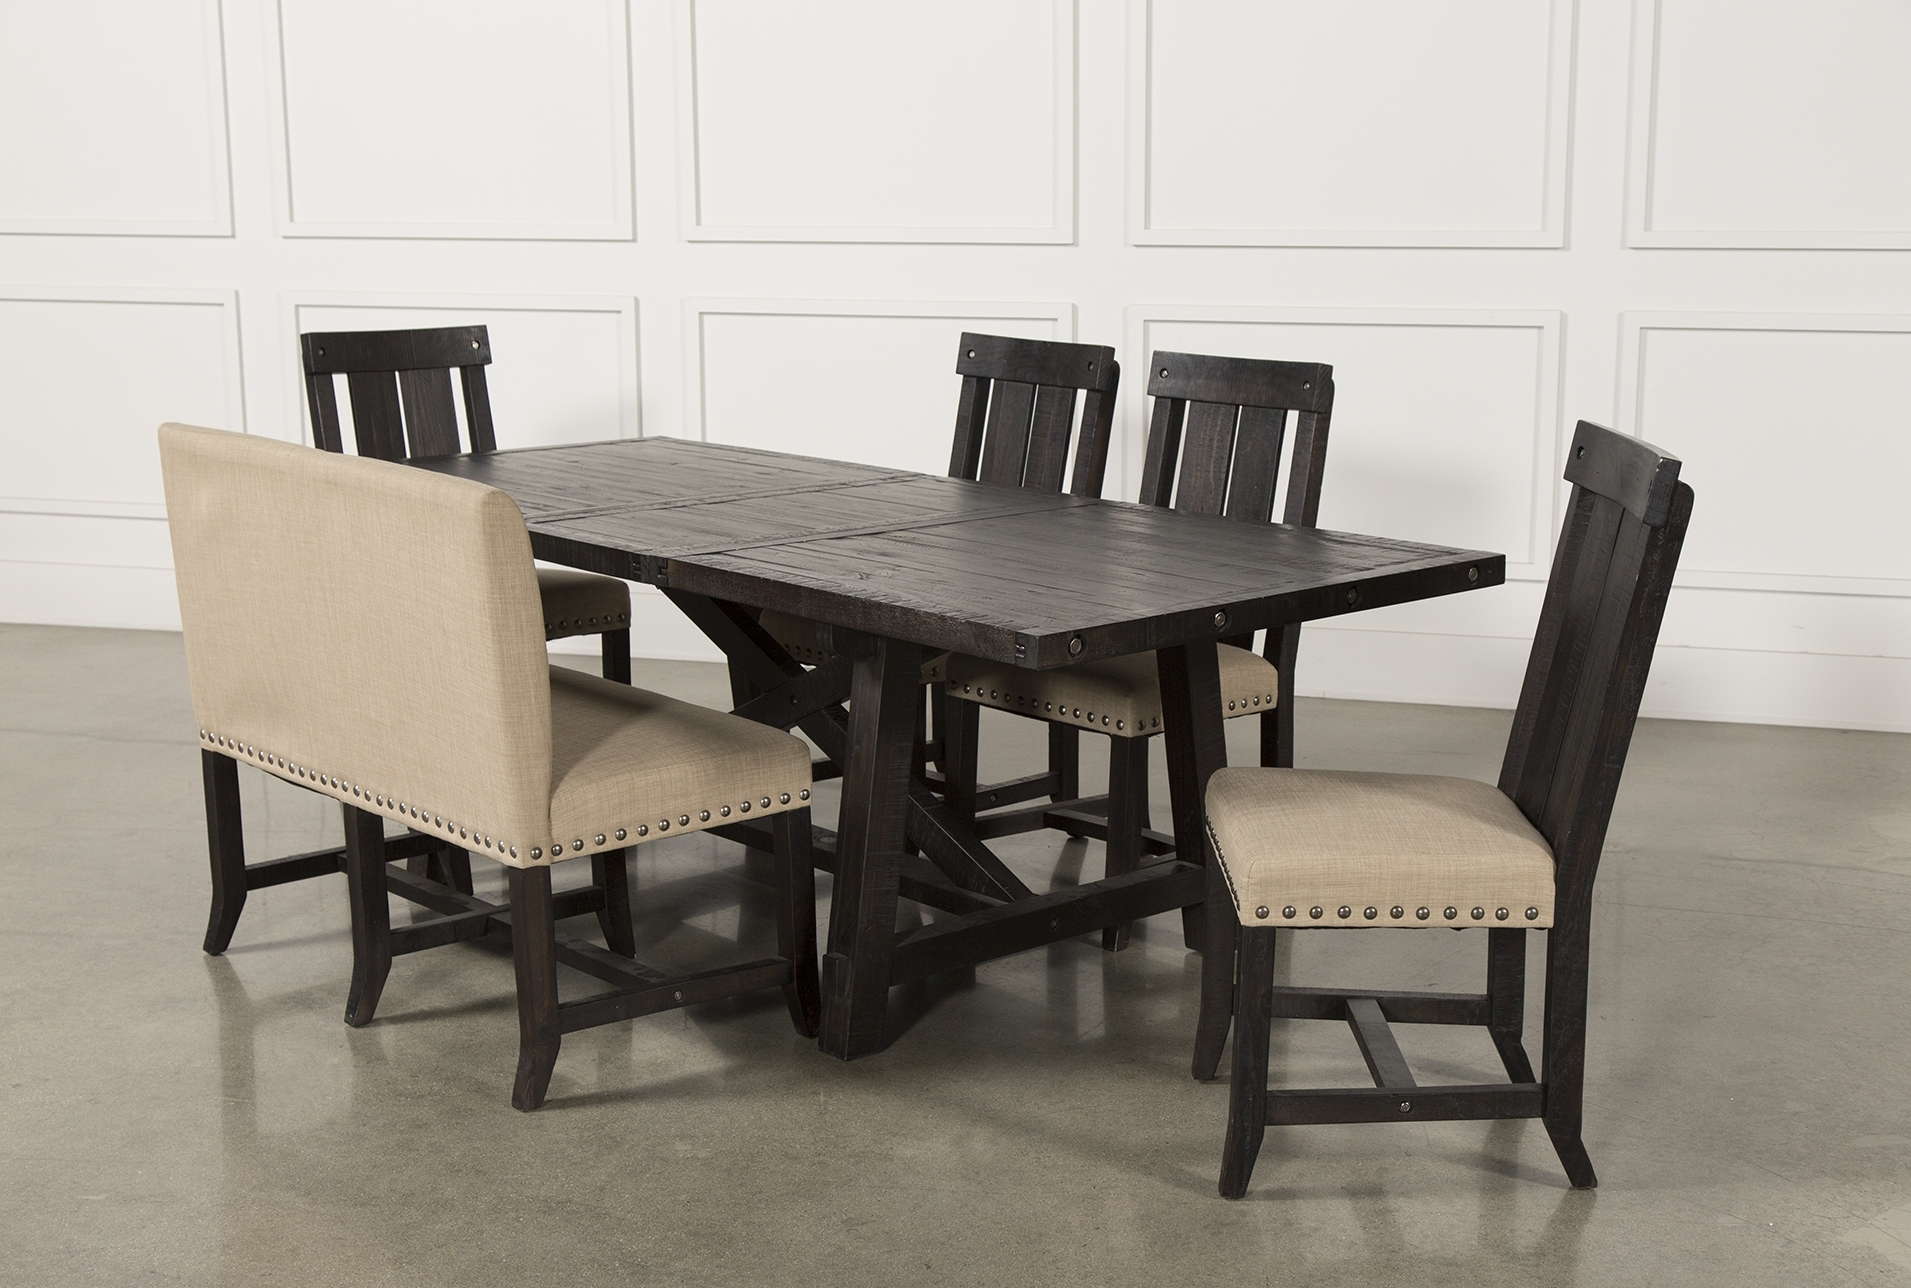 Products With Regard To Jaxon Grey 7 Piece Rectangle Extension Dining Sets With Wood Chairs (View 5 of 25)